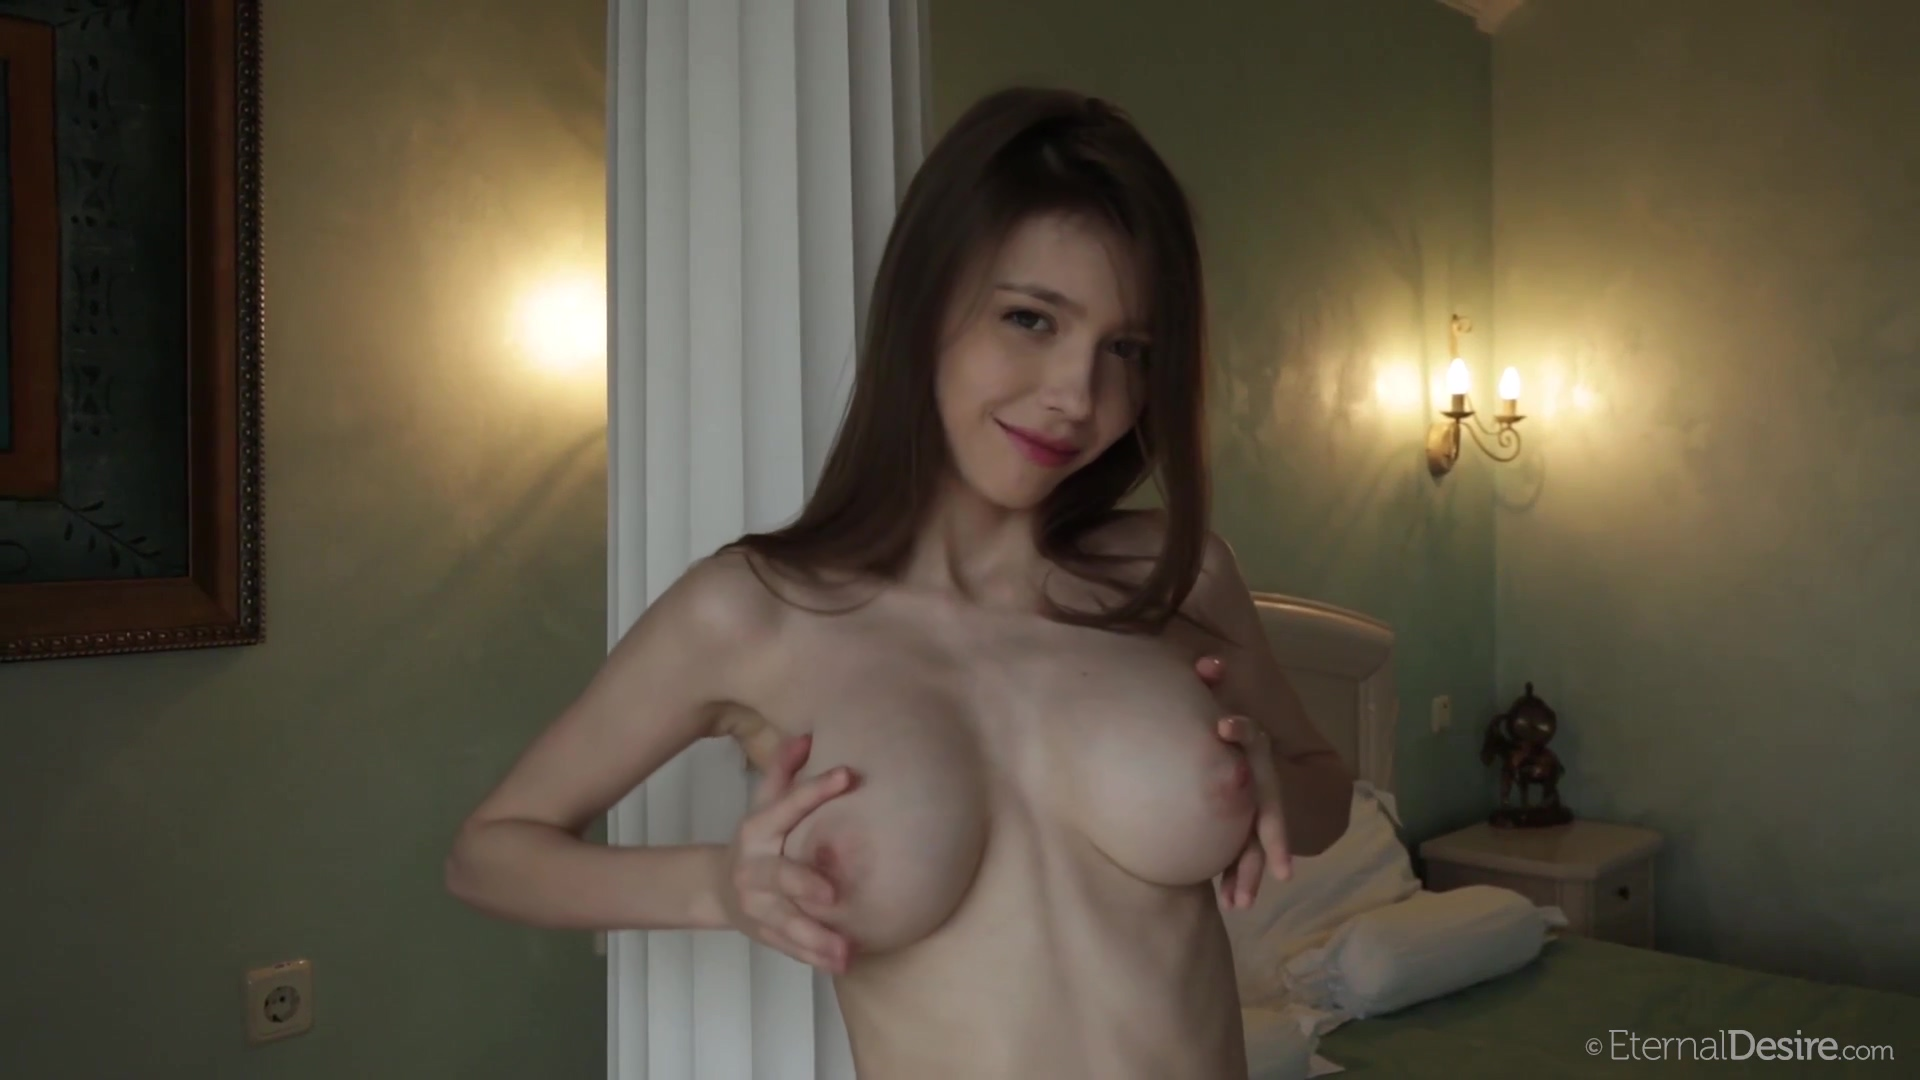 Lovely Young With A Hot Body And Big Boobs Solo